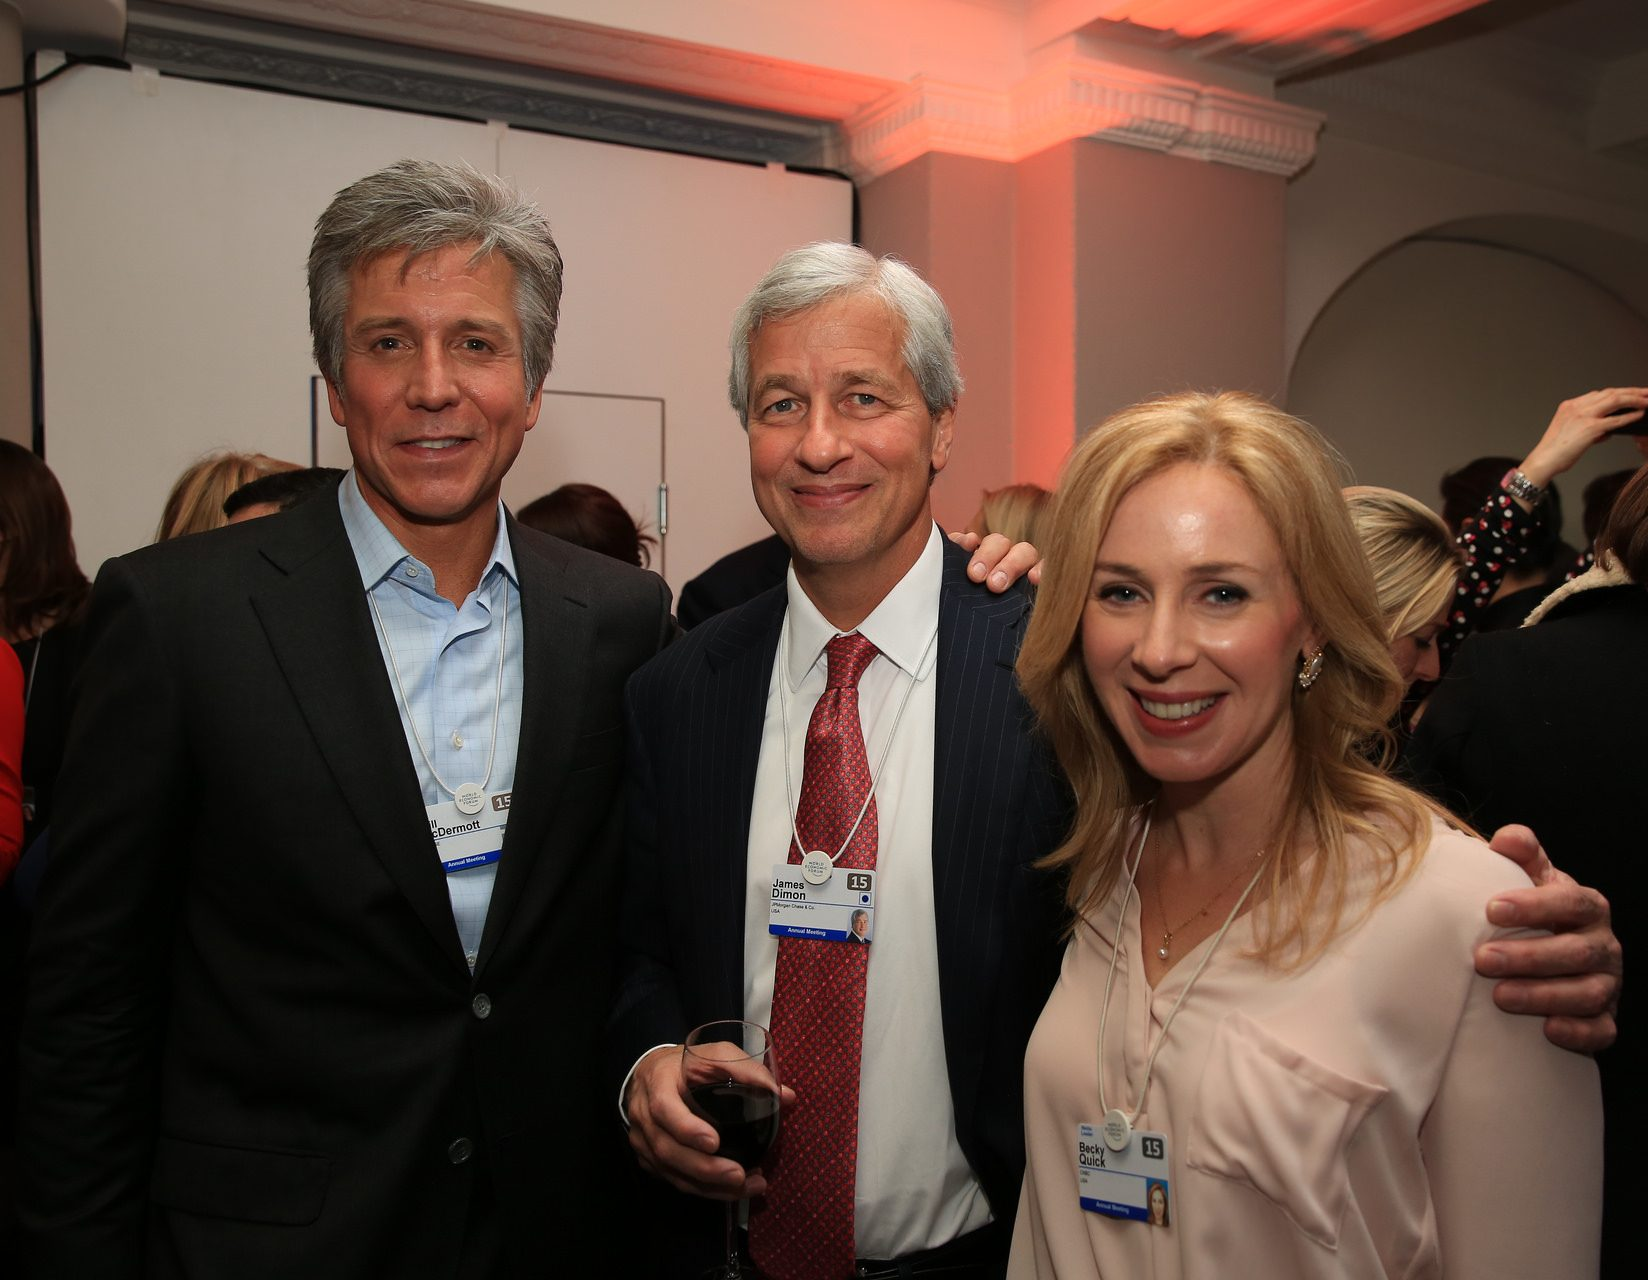 Bill McDermott, James Dimon, Becky Quick